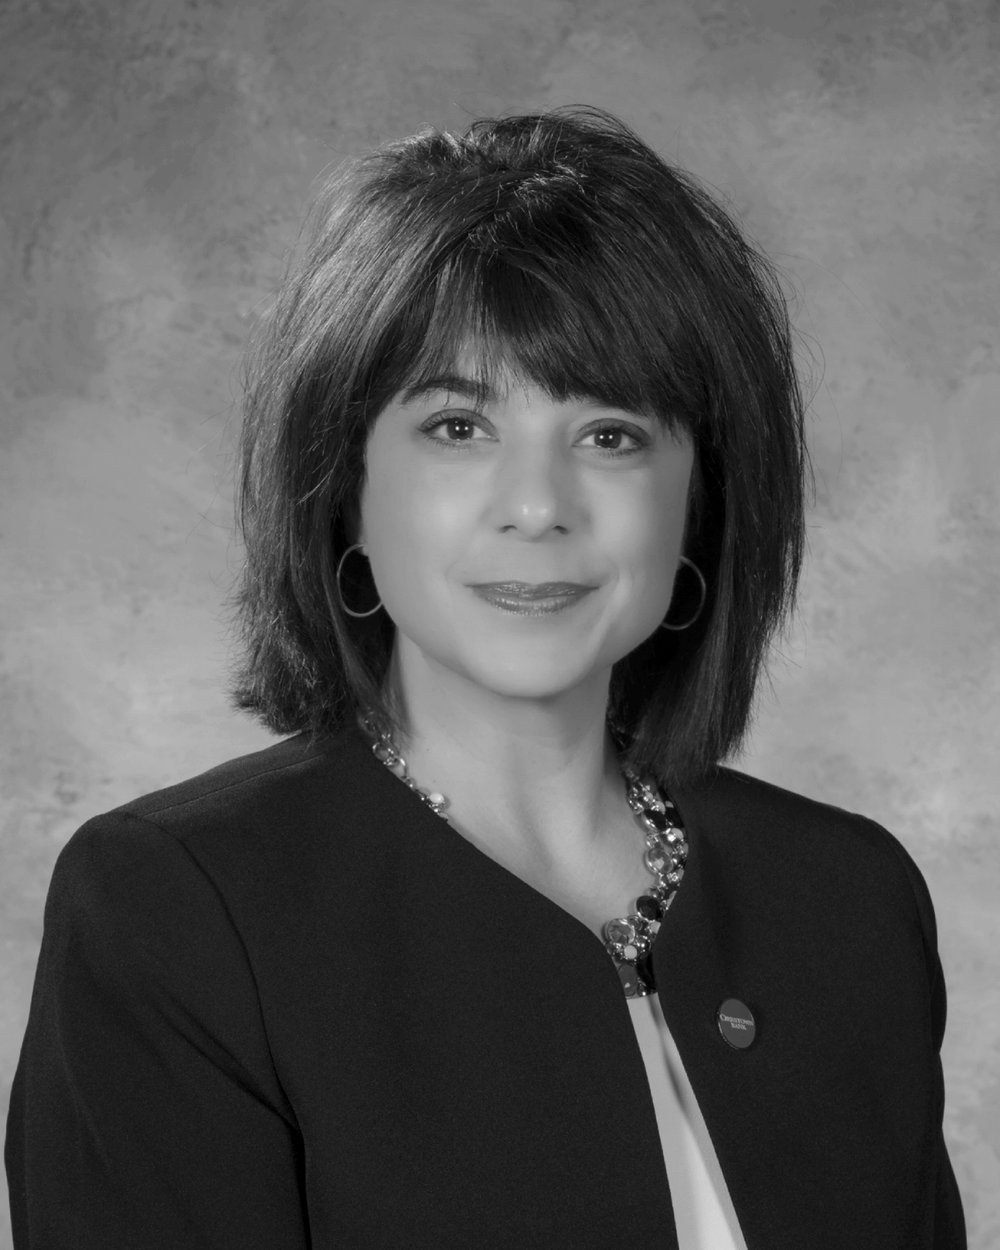 Alice Muldrow    business banking   Orrstown Bank  Cell: 717-350-4528 amuldrow@orrstown.com  www.orrstown.com